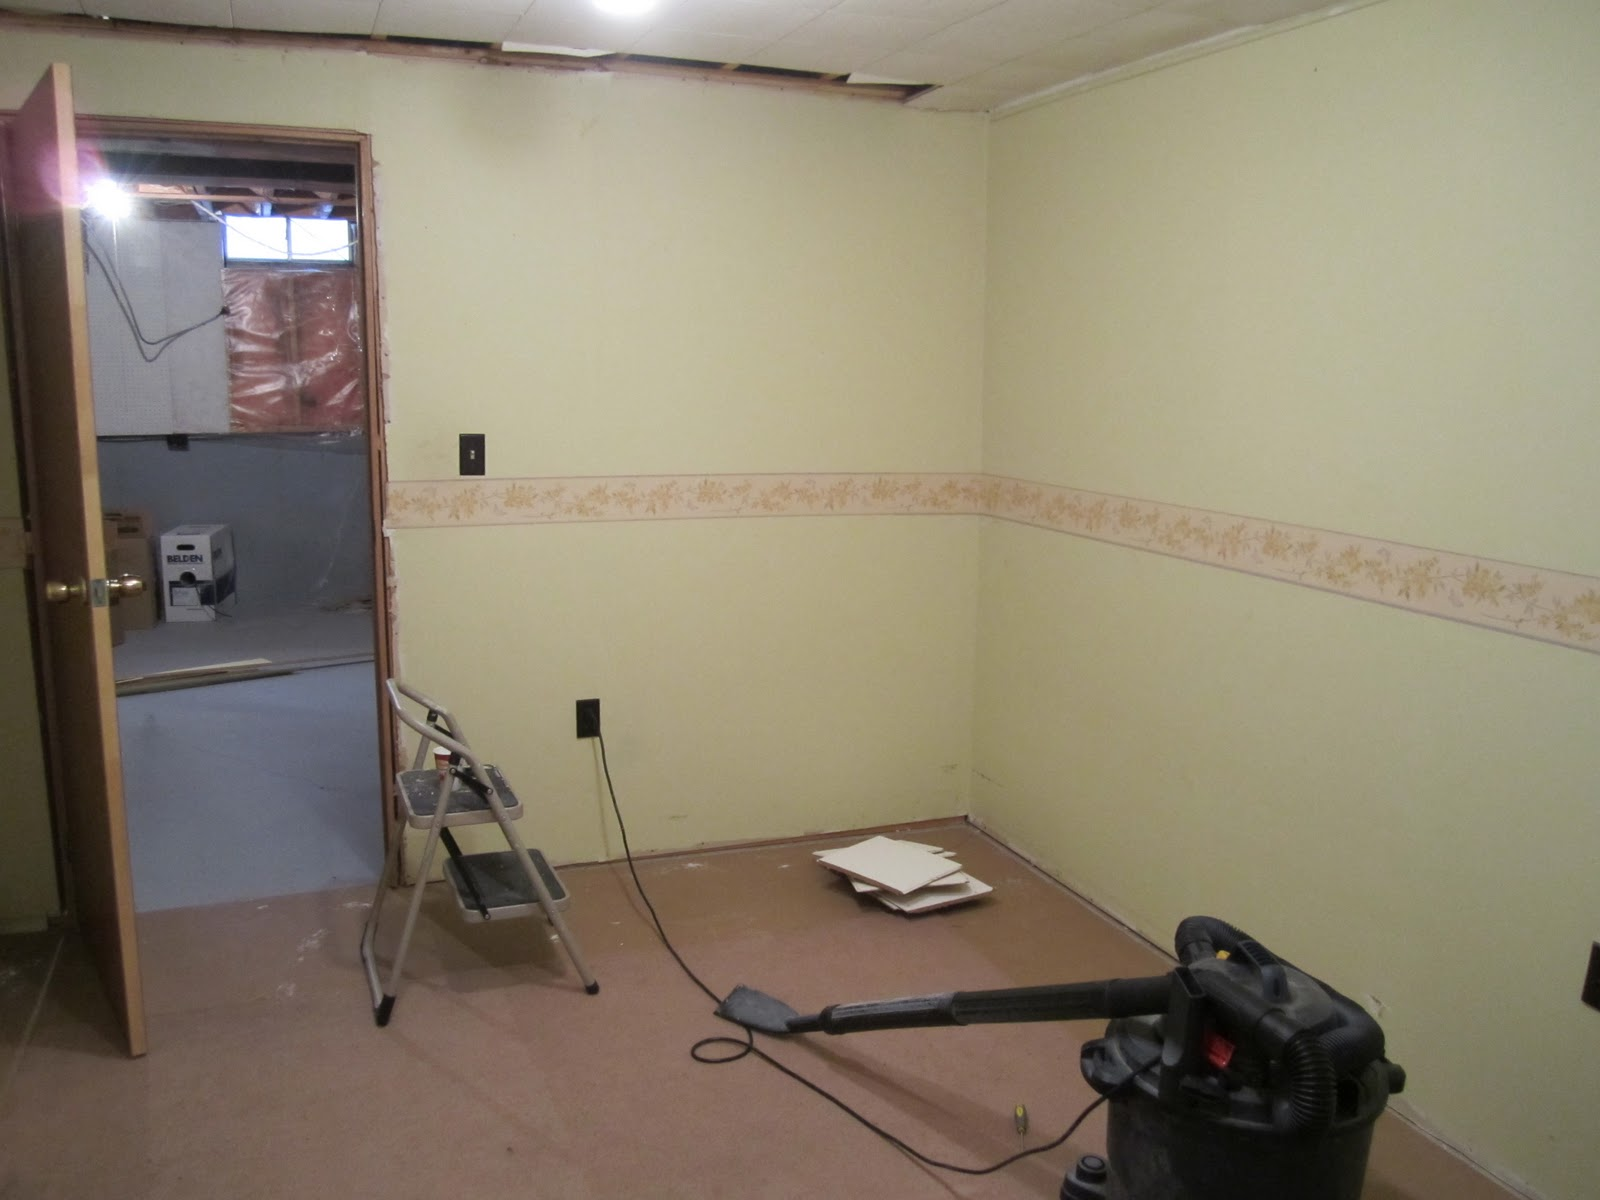 hd wallpapers hd how to remove wallpaper glue from drywall